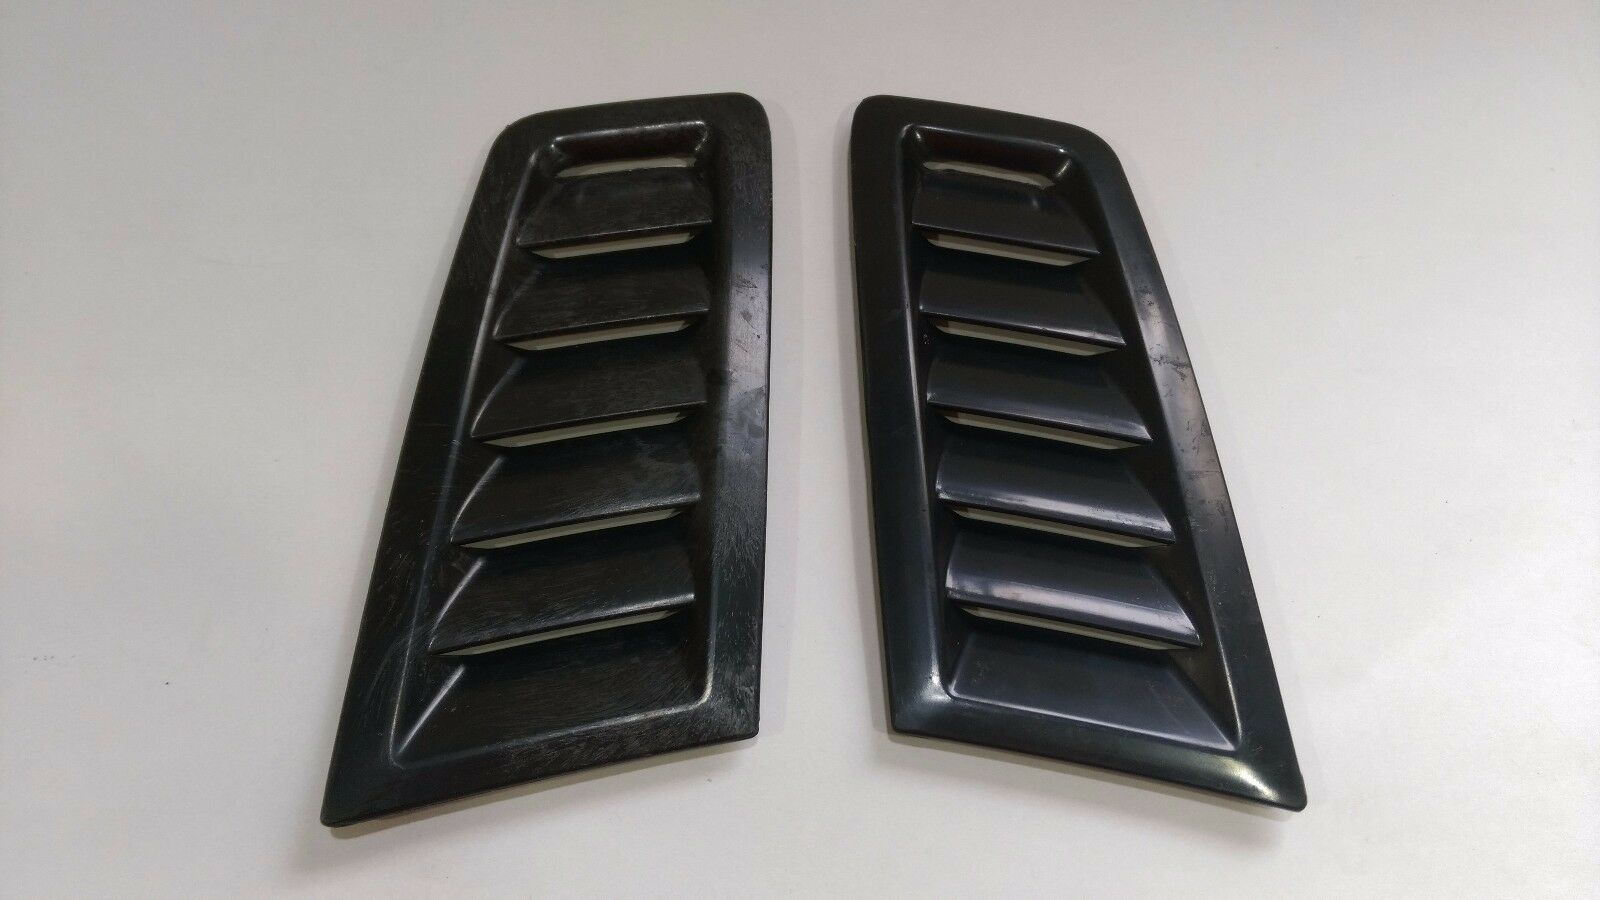 KIMISS ABS Car Bonnet Air Vent Modified Hood Air Venty Fits for RS MK2 platingSI-AT26104